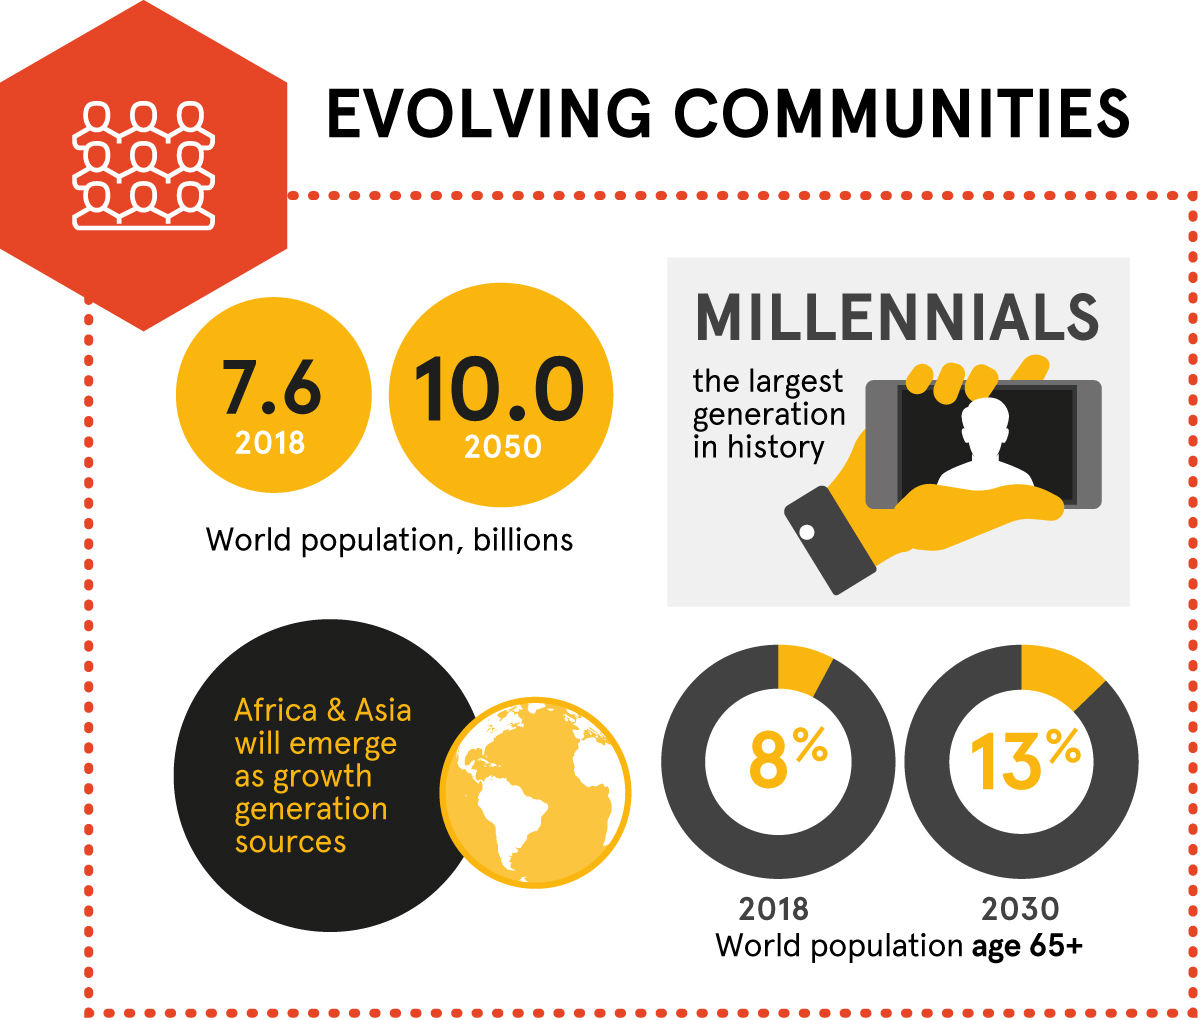 Megatrends – evolving communities. World population, billions: 7.6 in 2018, 10.0 in 2050. Millennials: the largest generation in history. Africa and Asia will emerge as the growth generation sources. World population age 65+: 8% in 2018, 13% in 2030.